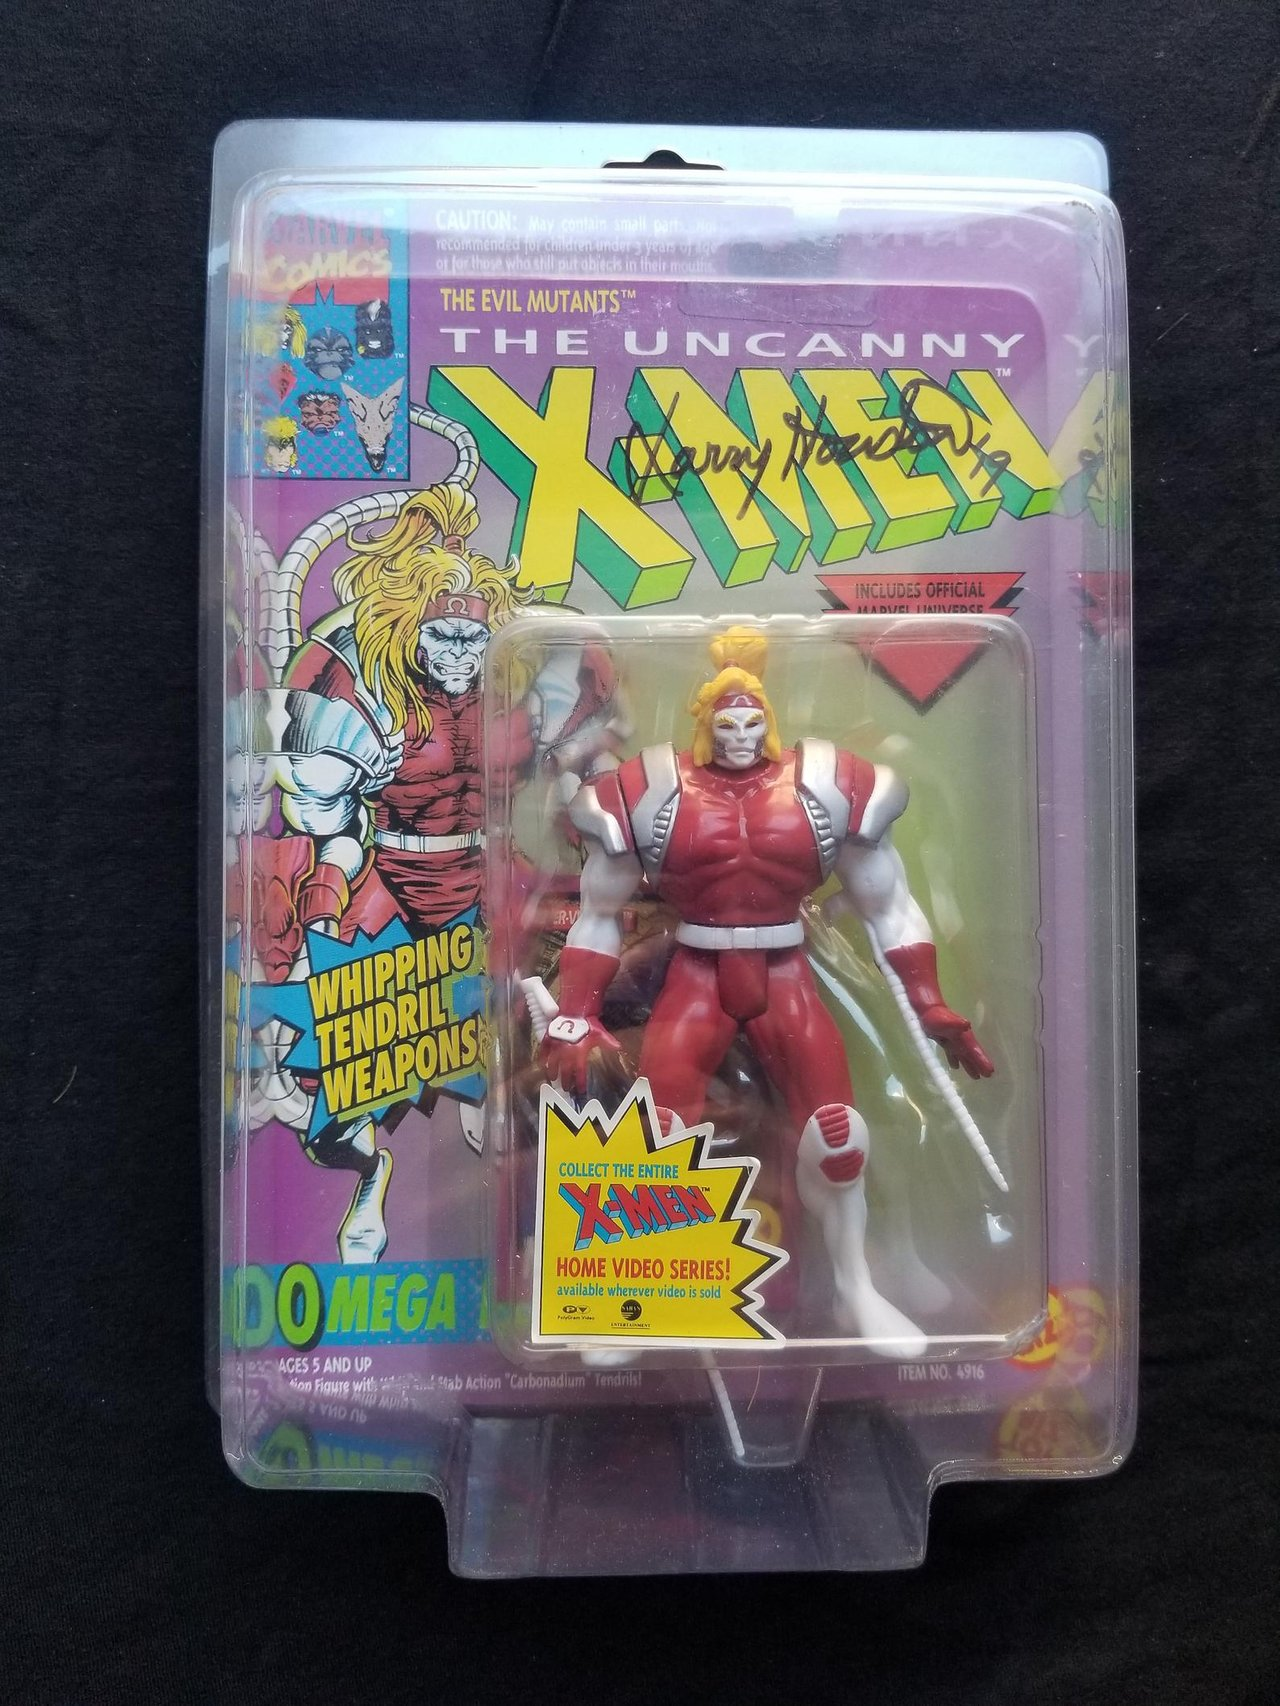 Autographed Toy Biz Omega Red Marvel Uncanny X-Men Vintage Signed Action Figure Animated Series Retro Toys Collectibles 1990s Comic Books